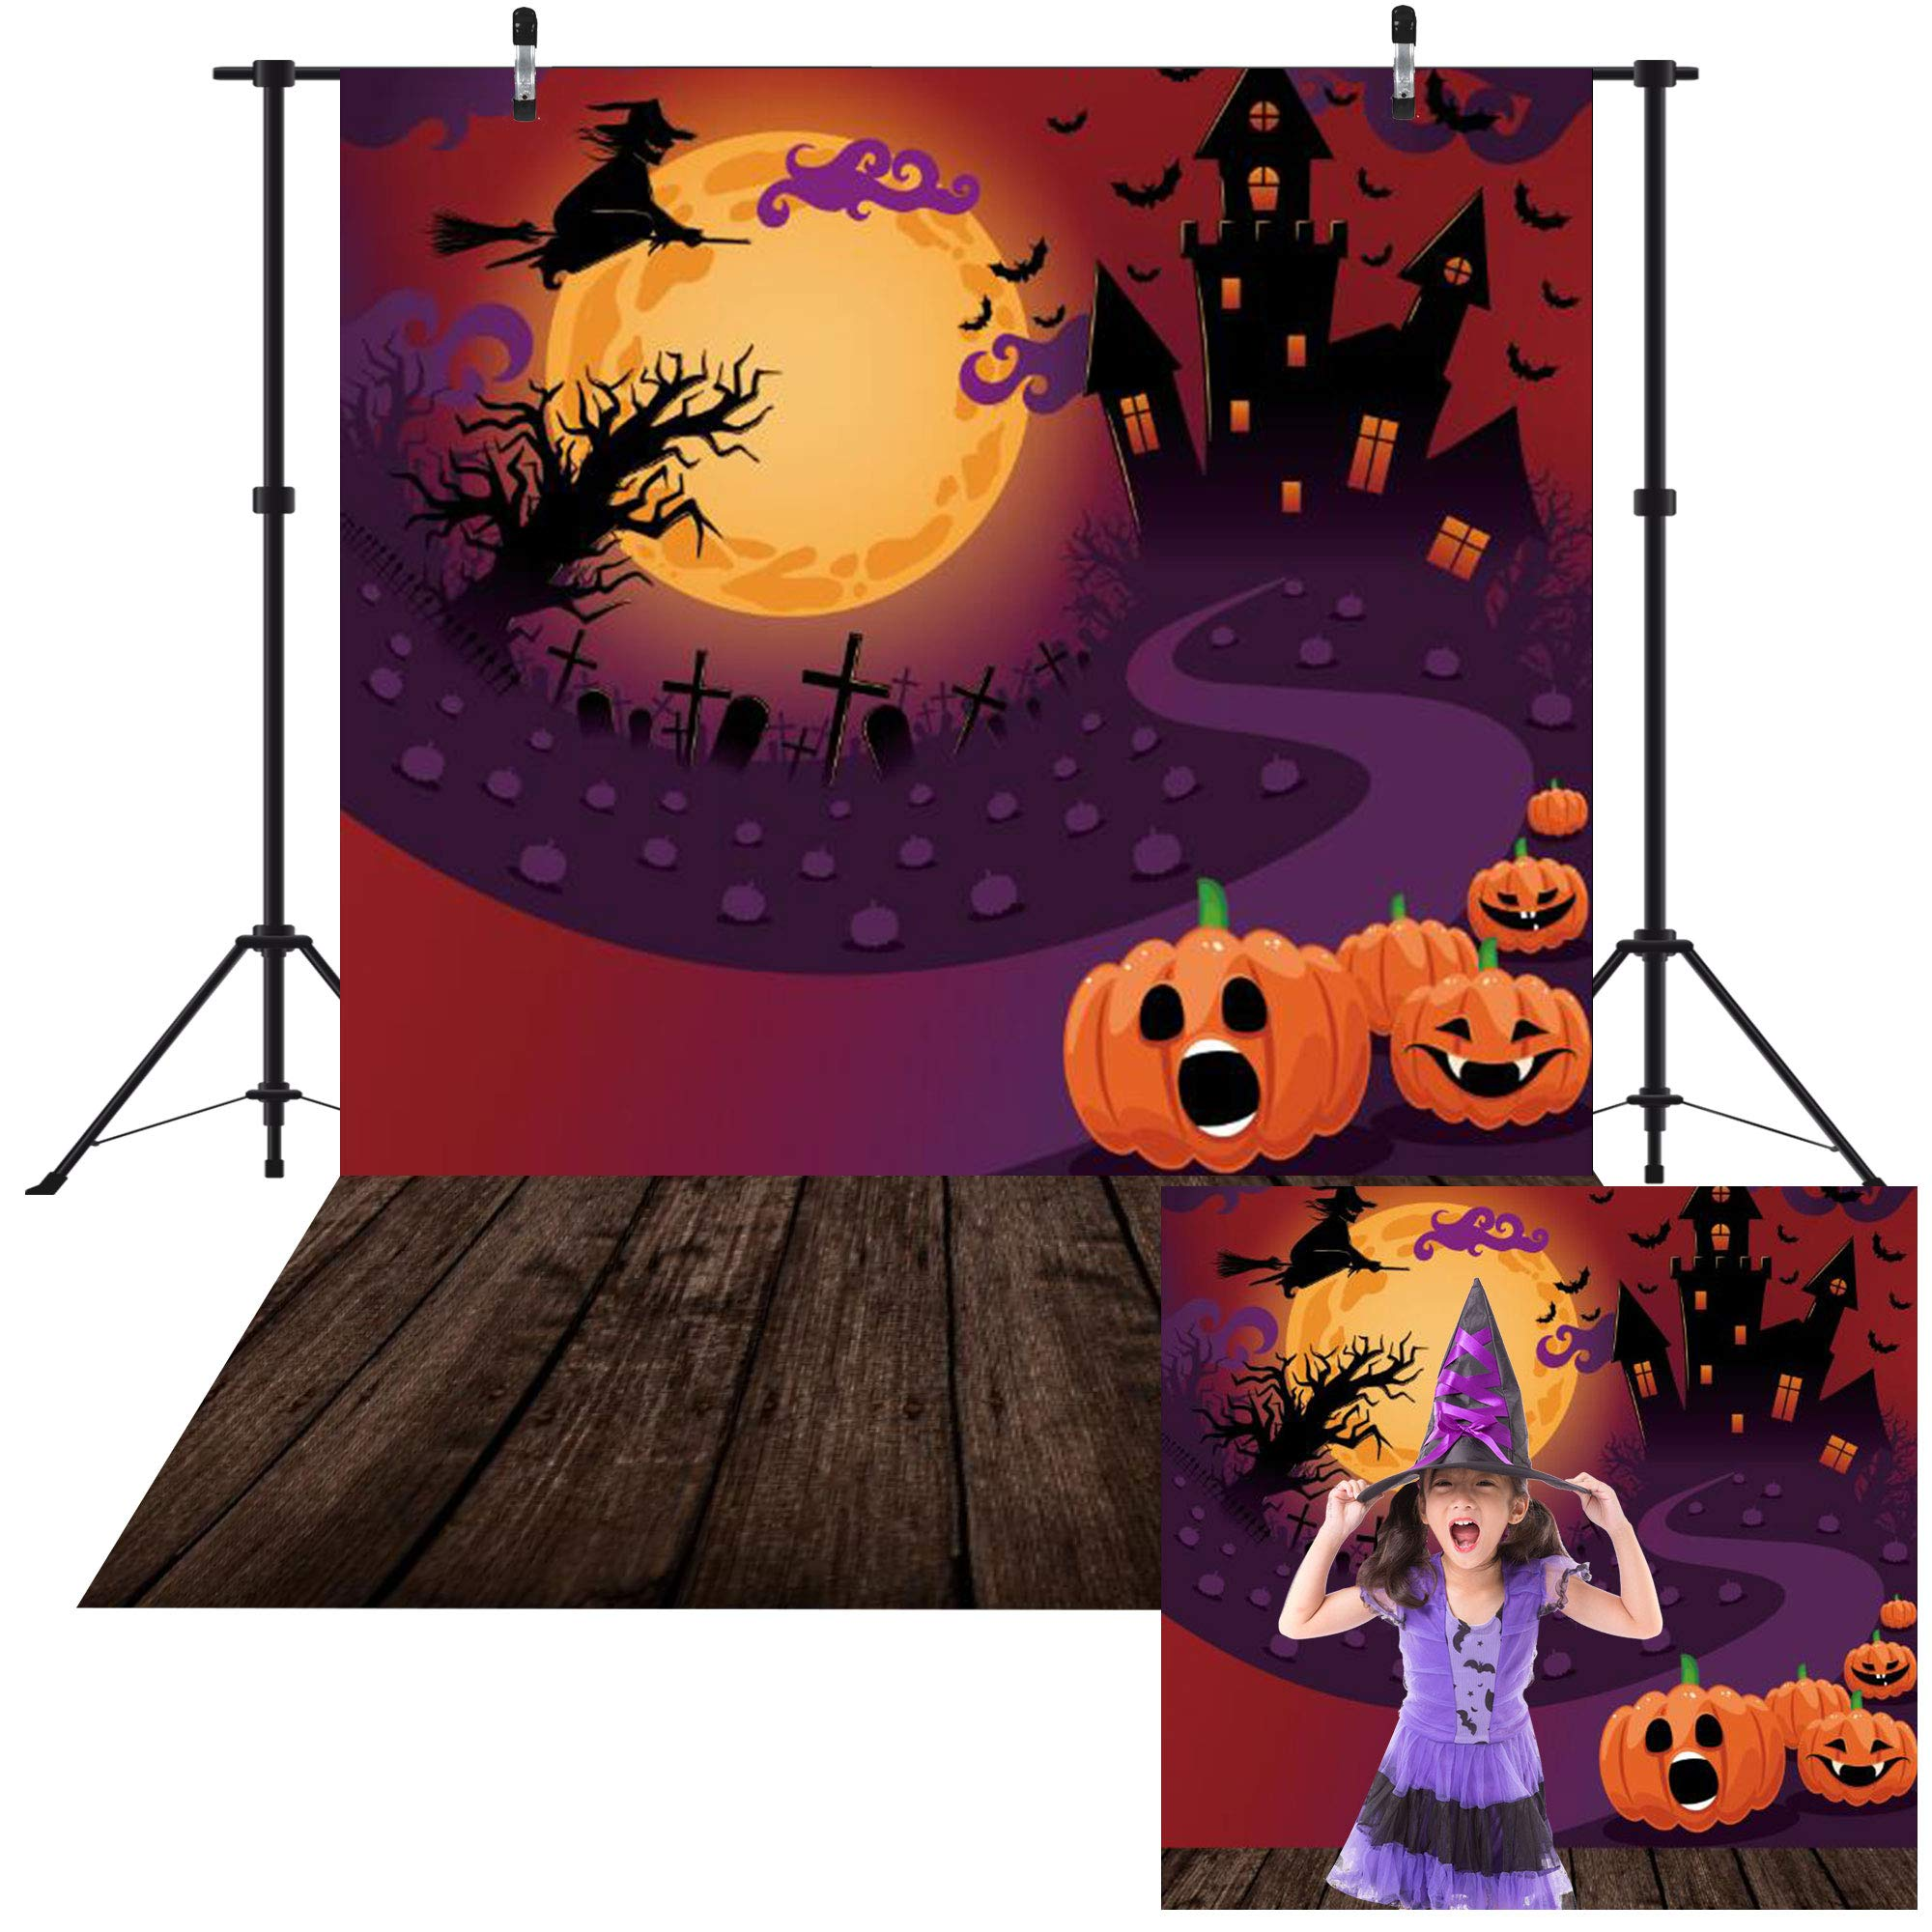 Haboke 5x7ft Durable/Soft Fabric Halloween Decorations Decor Backdrop for Photography Pumpkin Castle Witch and Bat Horrible Party for Kids Photo Background Photo Studio Booth Props by Haboke